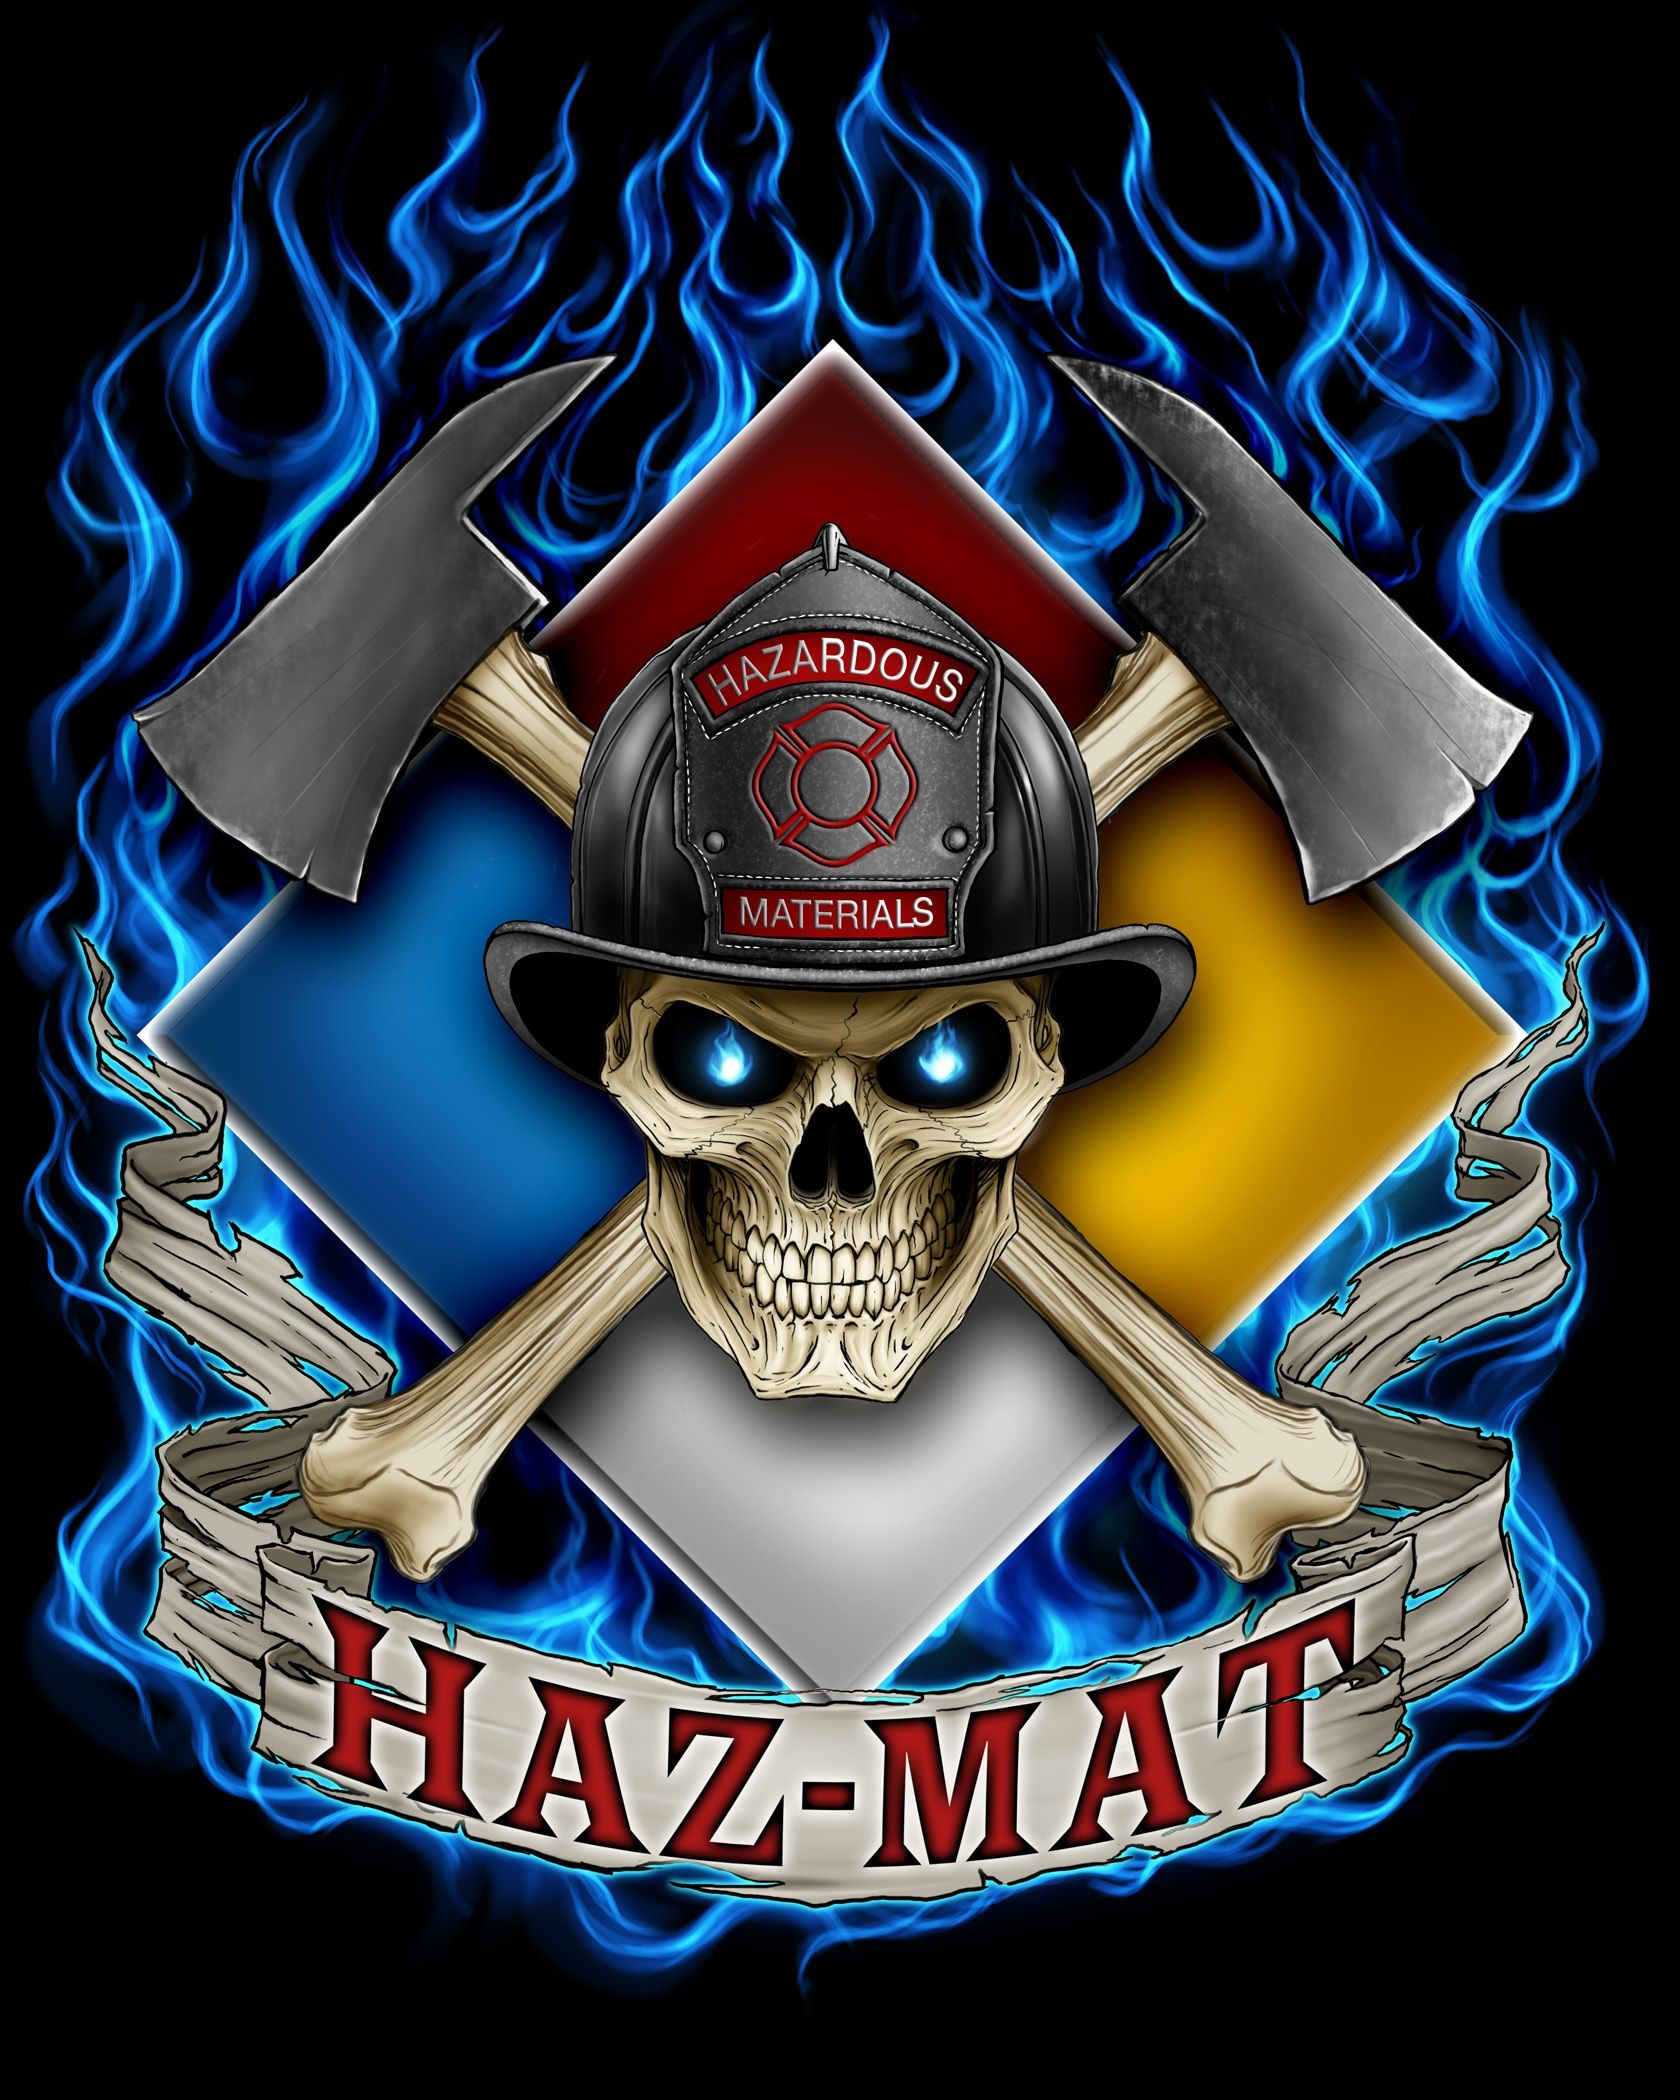 Firefighter Hazmat (With images) Firefighter